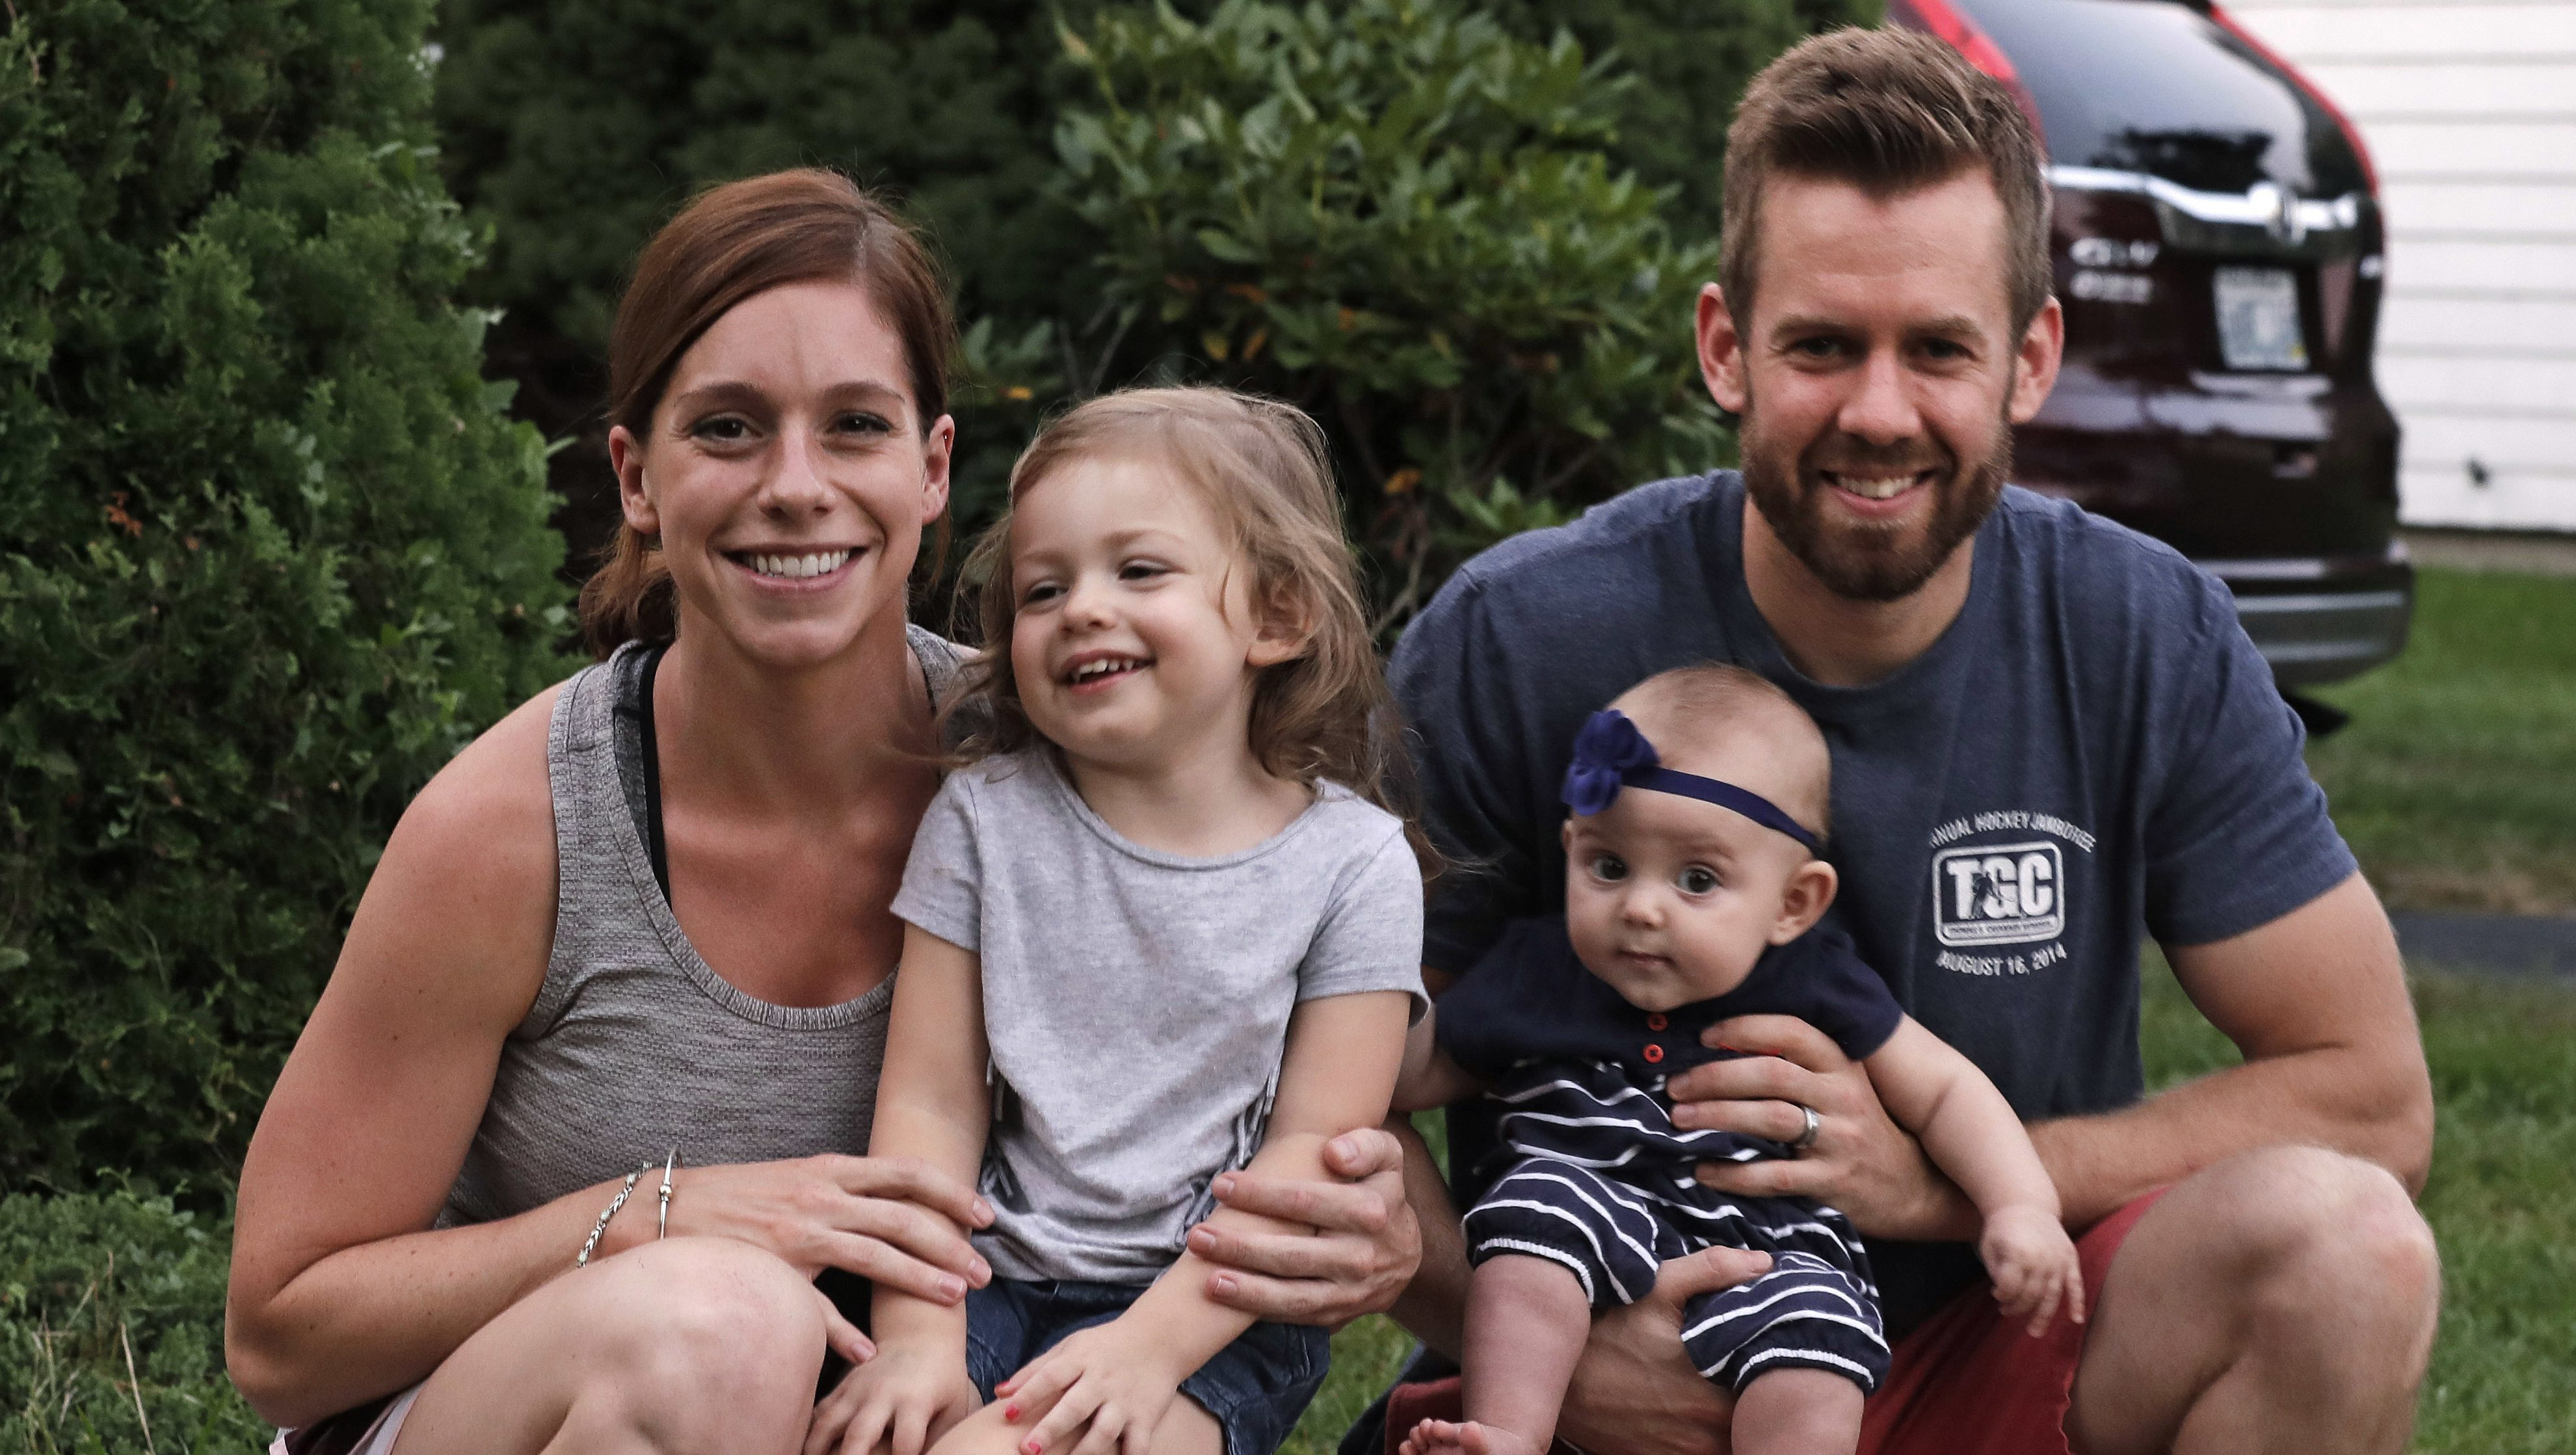 Ryan Smith, right, poses with his wife, Sarah, and children Ashton, 2, and Eden, 6 months, outside their family home, Tuesday, Sept. 20, 2016, in Cranston, Rhode Island. Both of the Smiths were able to take advantage of paid family leave with the birth of their daughter Eden. As both leading presidential candidates tout campaign proposals promising paid leave to take care of a newborn baby, three states, California, New Jersey and Rhode Island, already have programs available to parents.